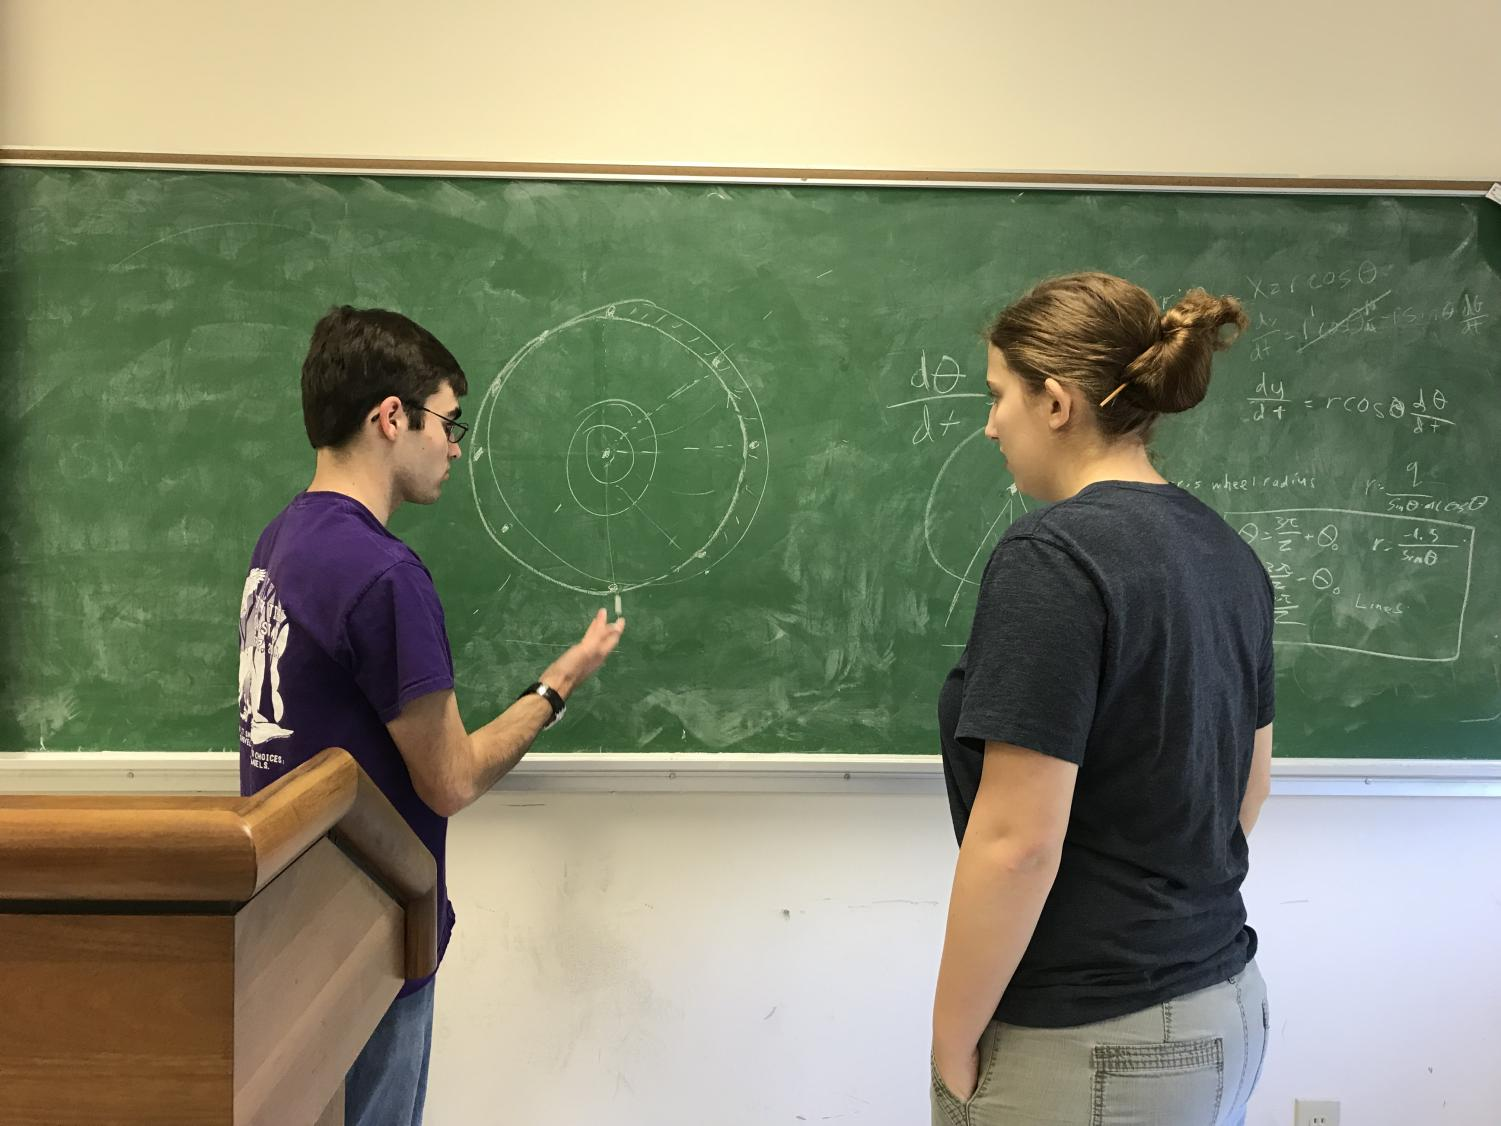 William Johnson and Leah Pettit plan up a storm on the chalkboard.